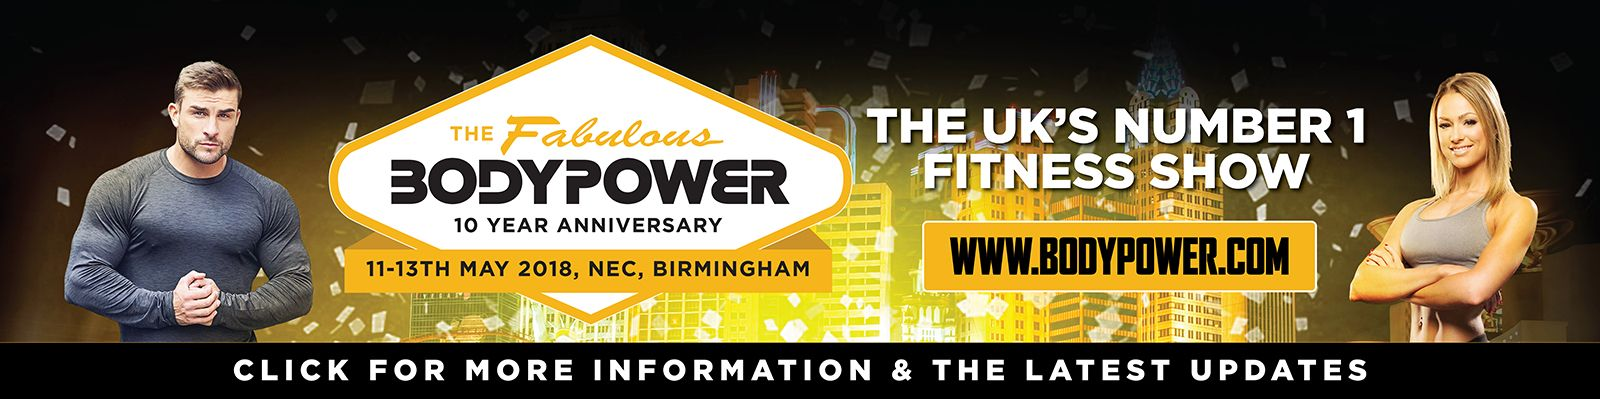 BodyPower - Pushing the boundaries of the body's power